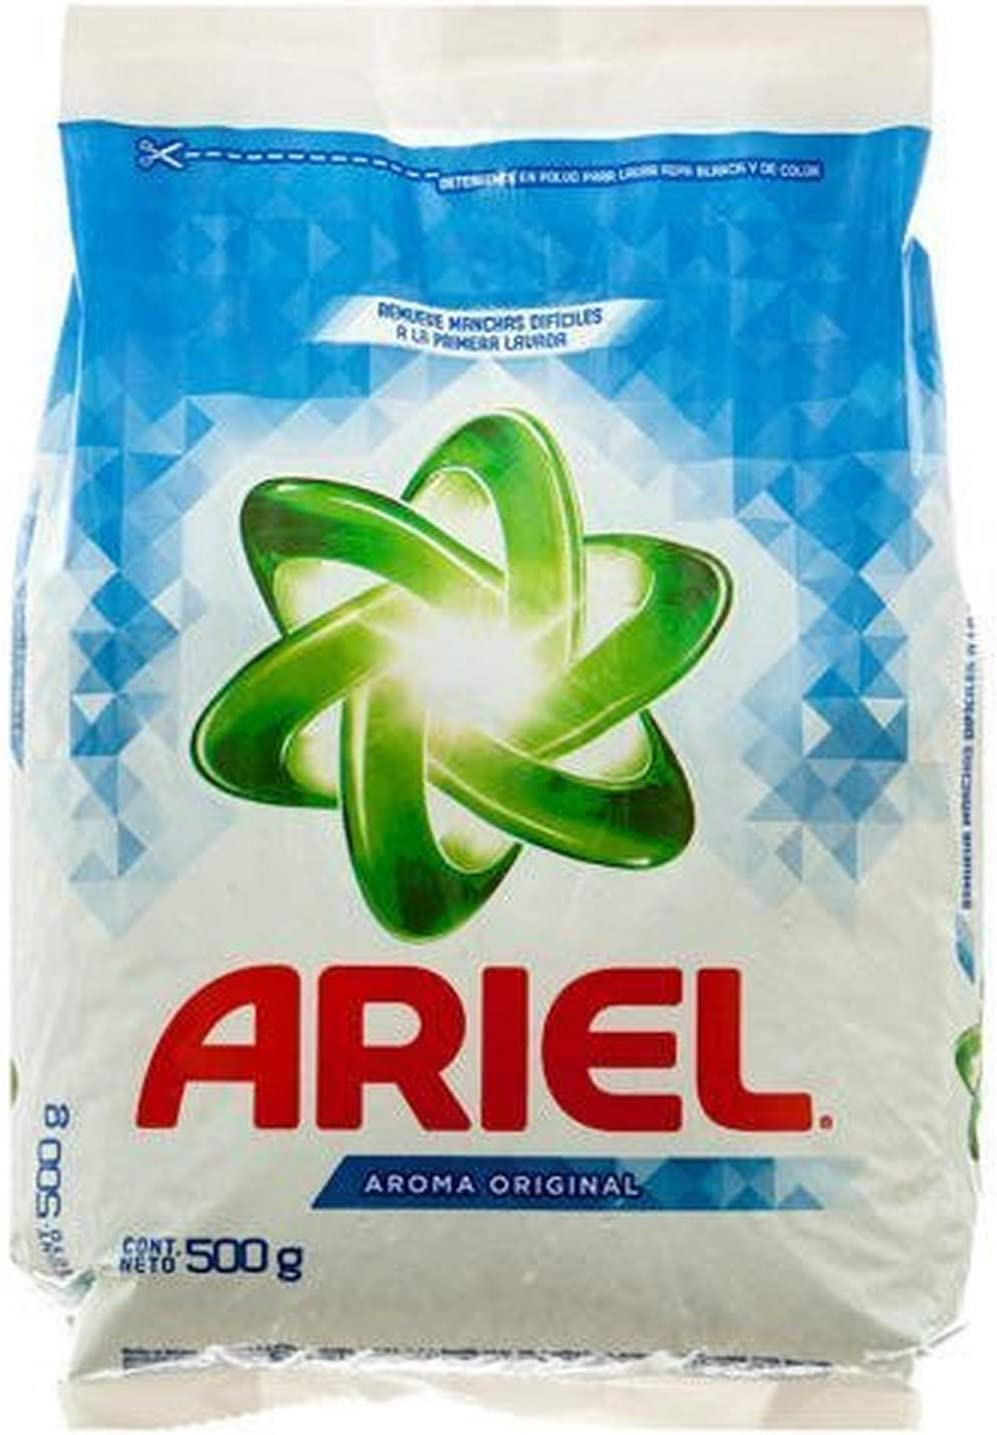 ARIEL Laundry Powder Detergent Selling and selling Manufacturer direct delivery Original 500G 3-Pack Aroma